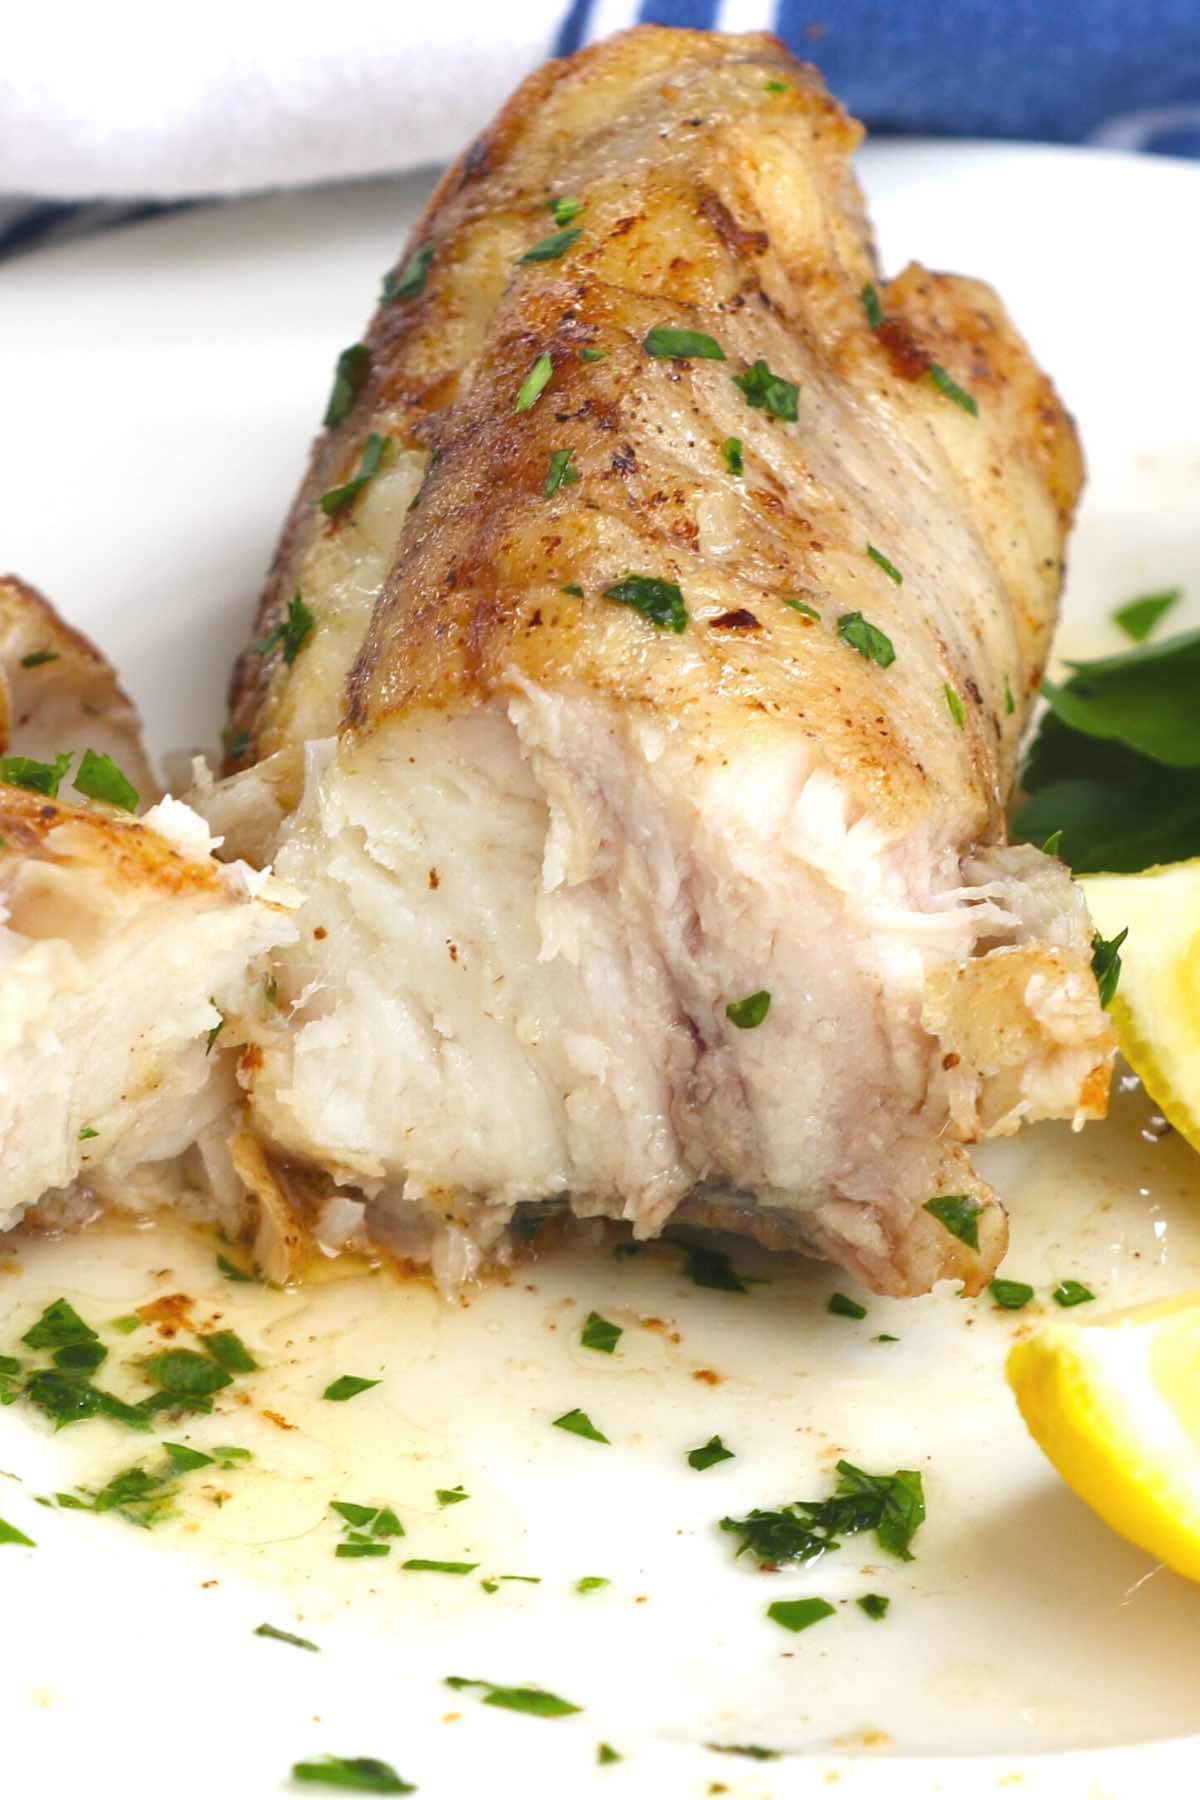 Closeup of perfectly cooked monkfish showing the firm texture